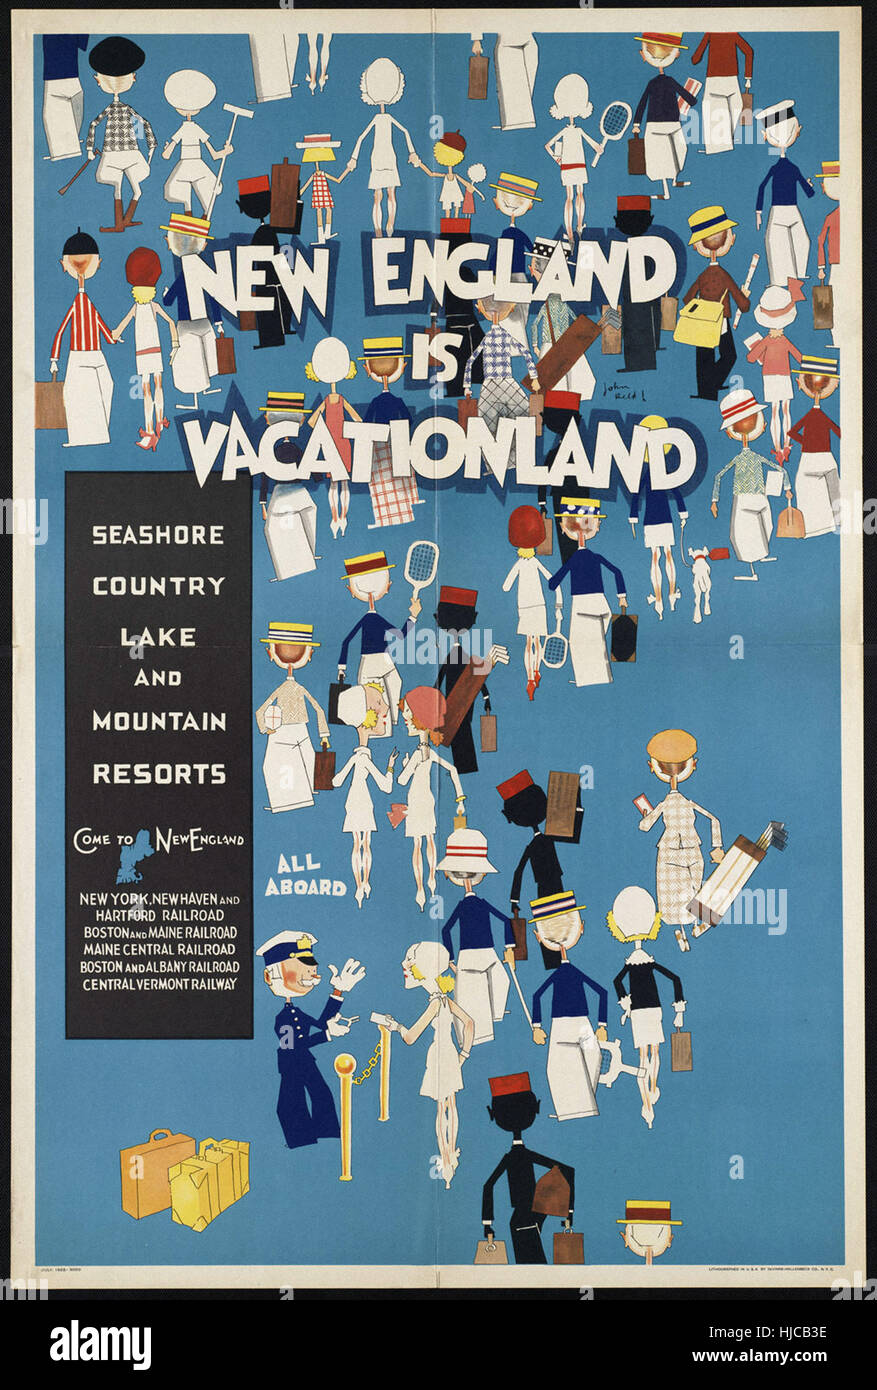 New England is vacationland. Seashore Country lake and mountain resorts  - Vintage travel poster 1920s-1940s - Stock Image